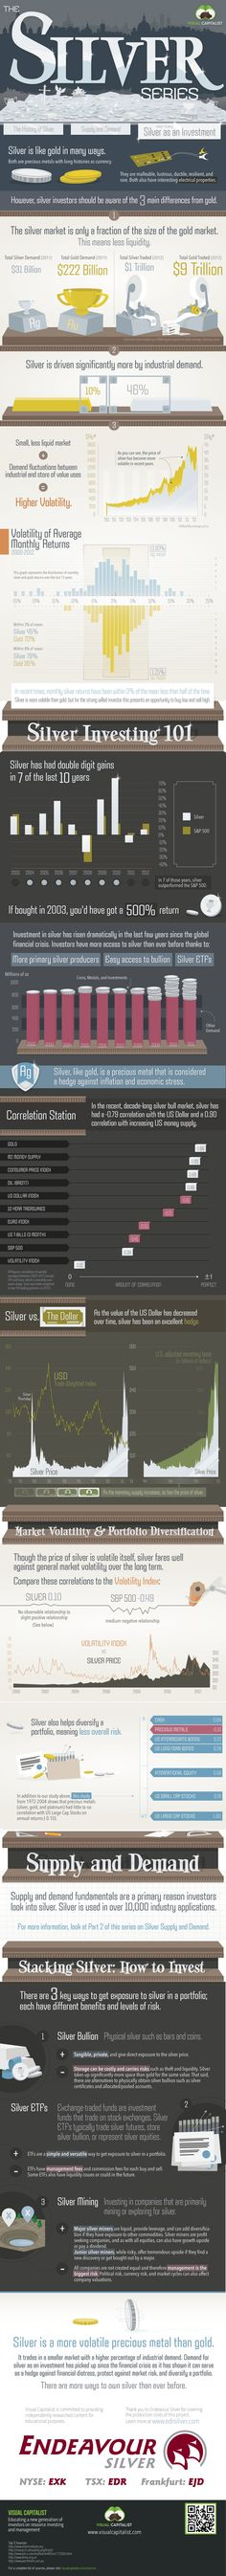 The Silver Series Part 3: Silver as an Investment